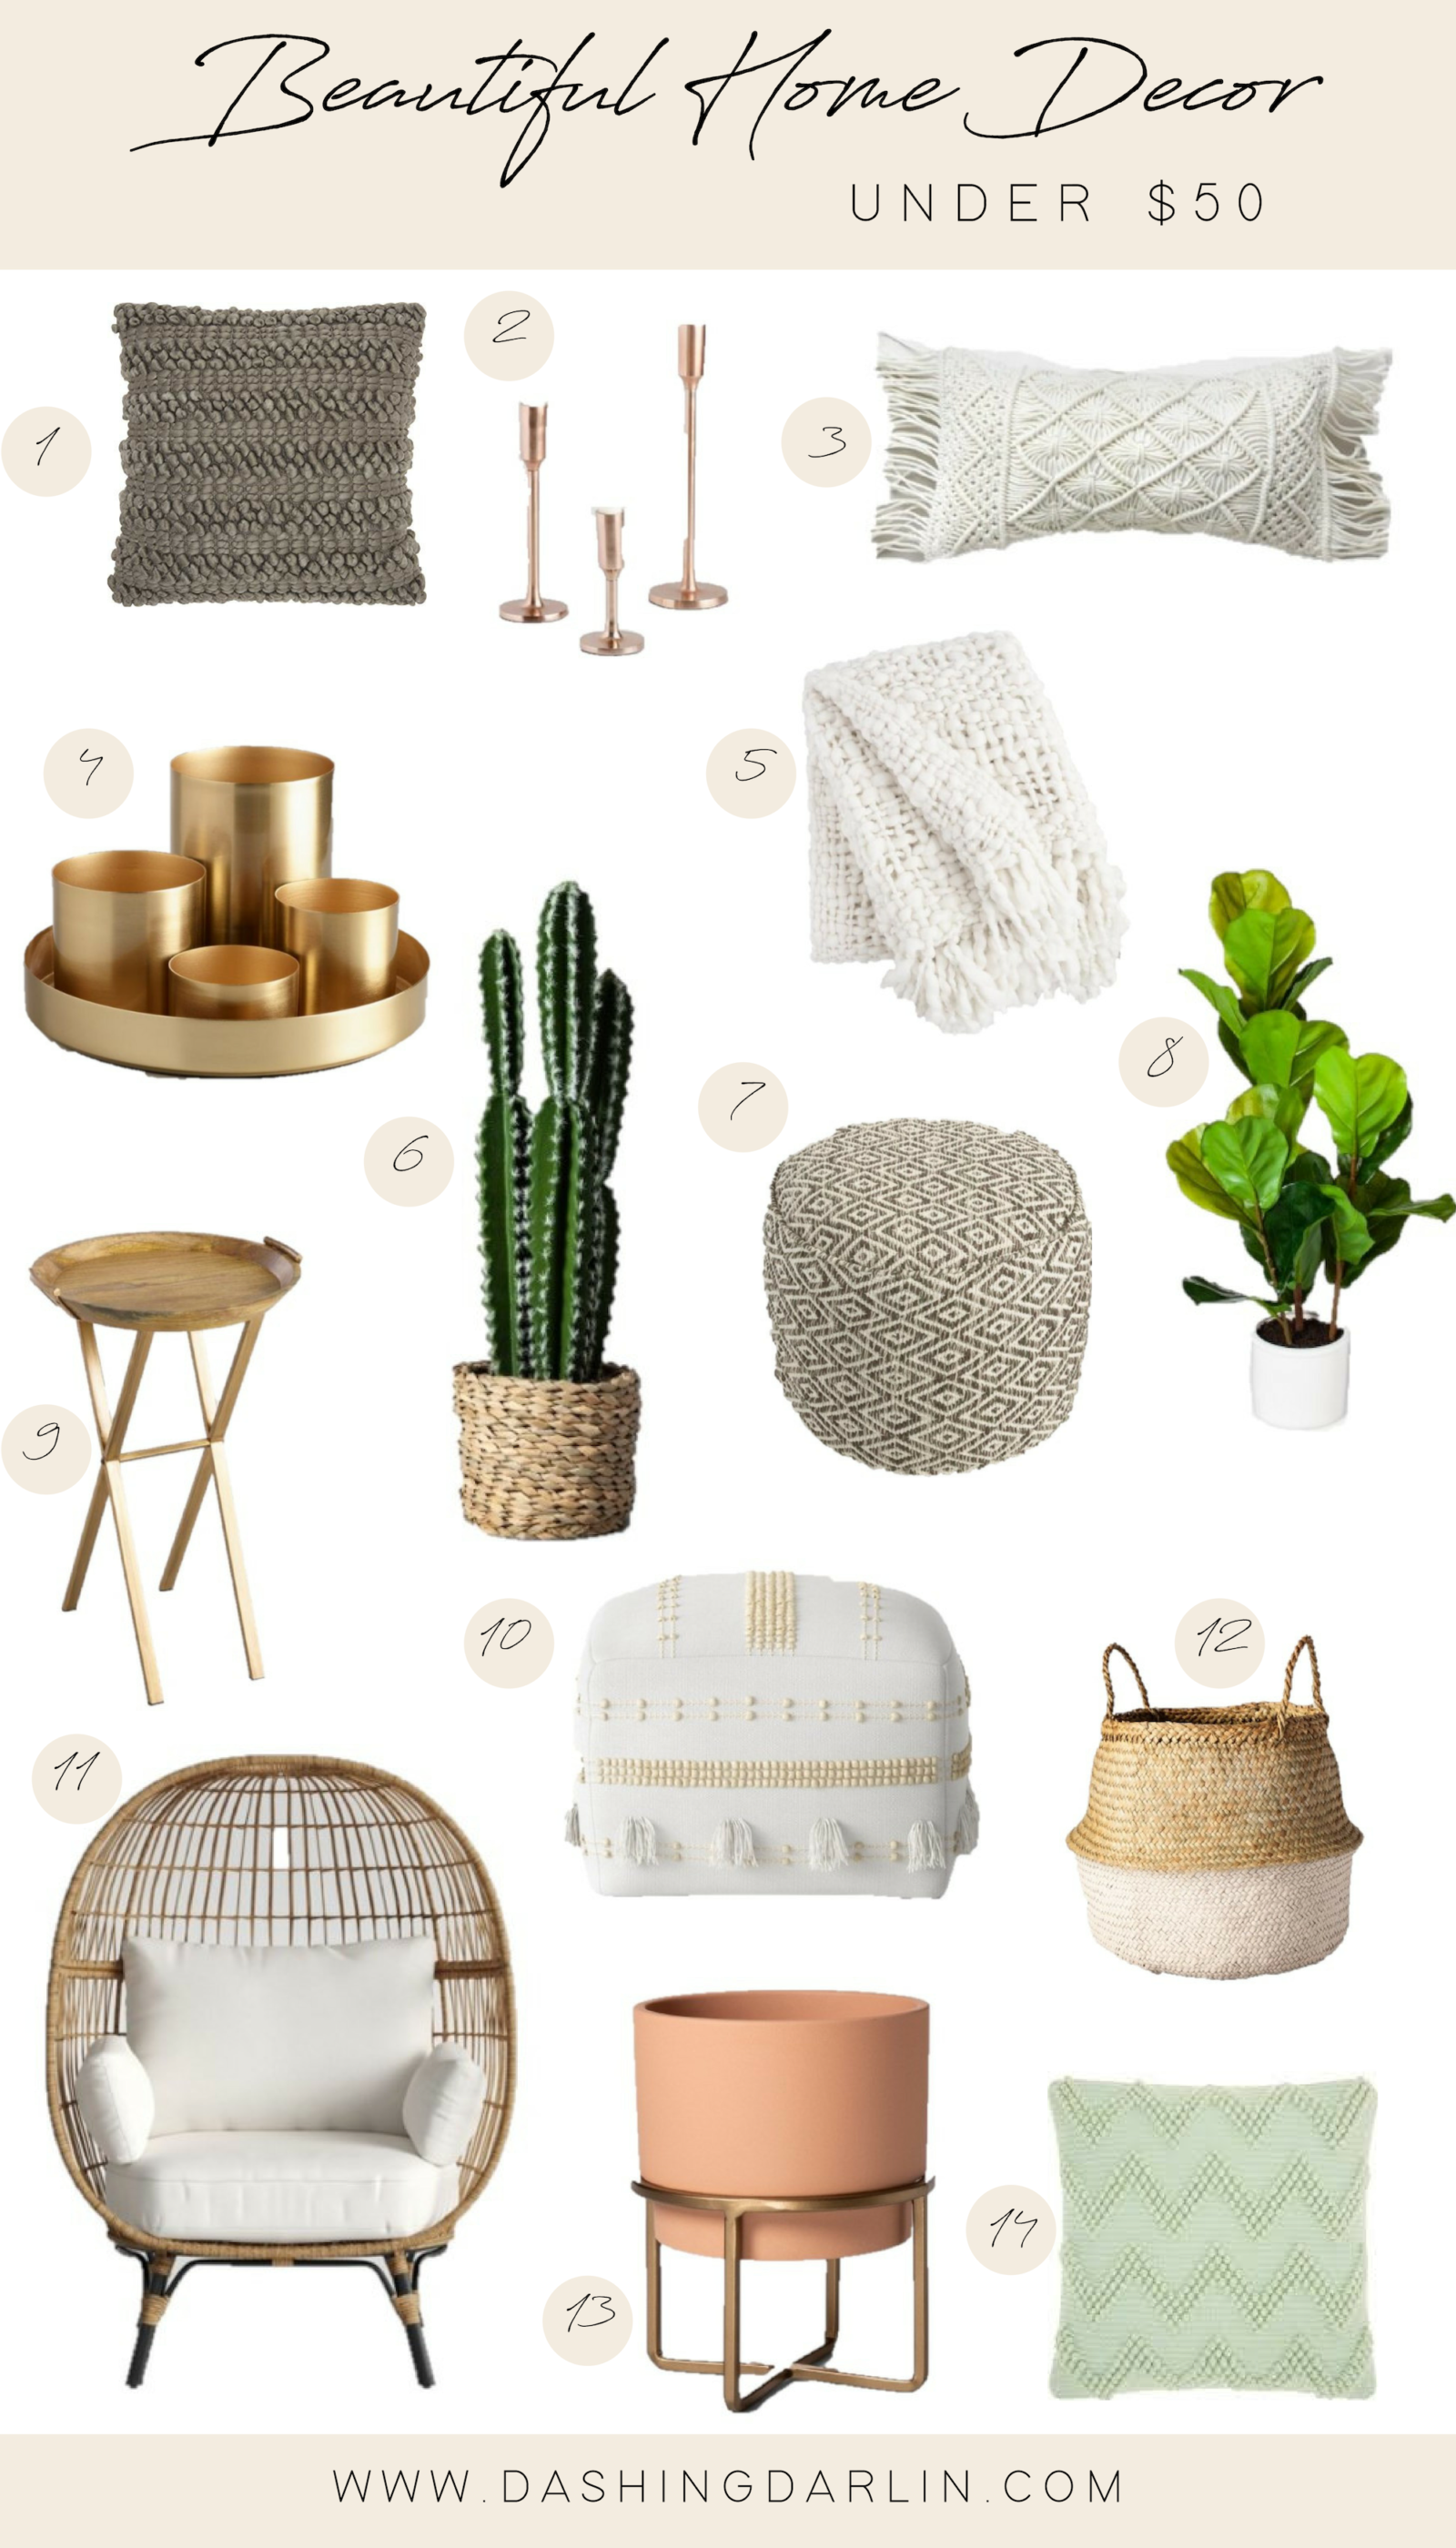 Home Decor Under $50 - Dashing Darlin' - Shop all of my favorite home decor items under $50. Bohemian decor is my favorite. Textures, fiddle  -